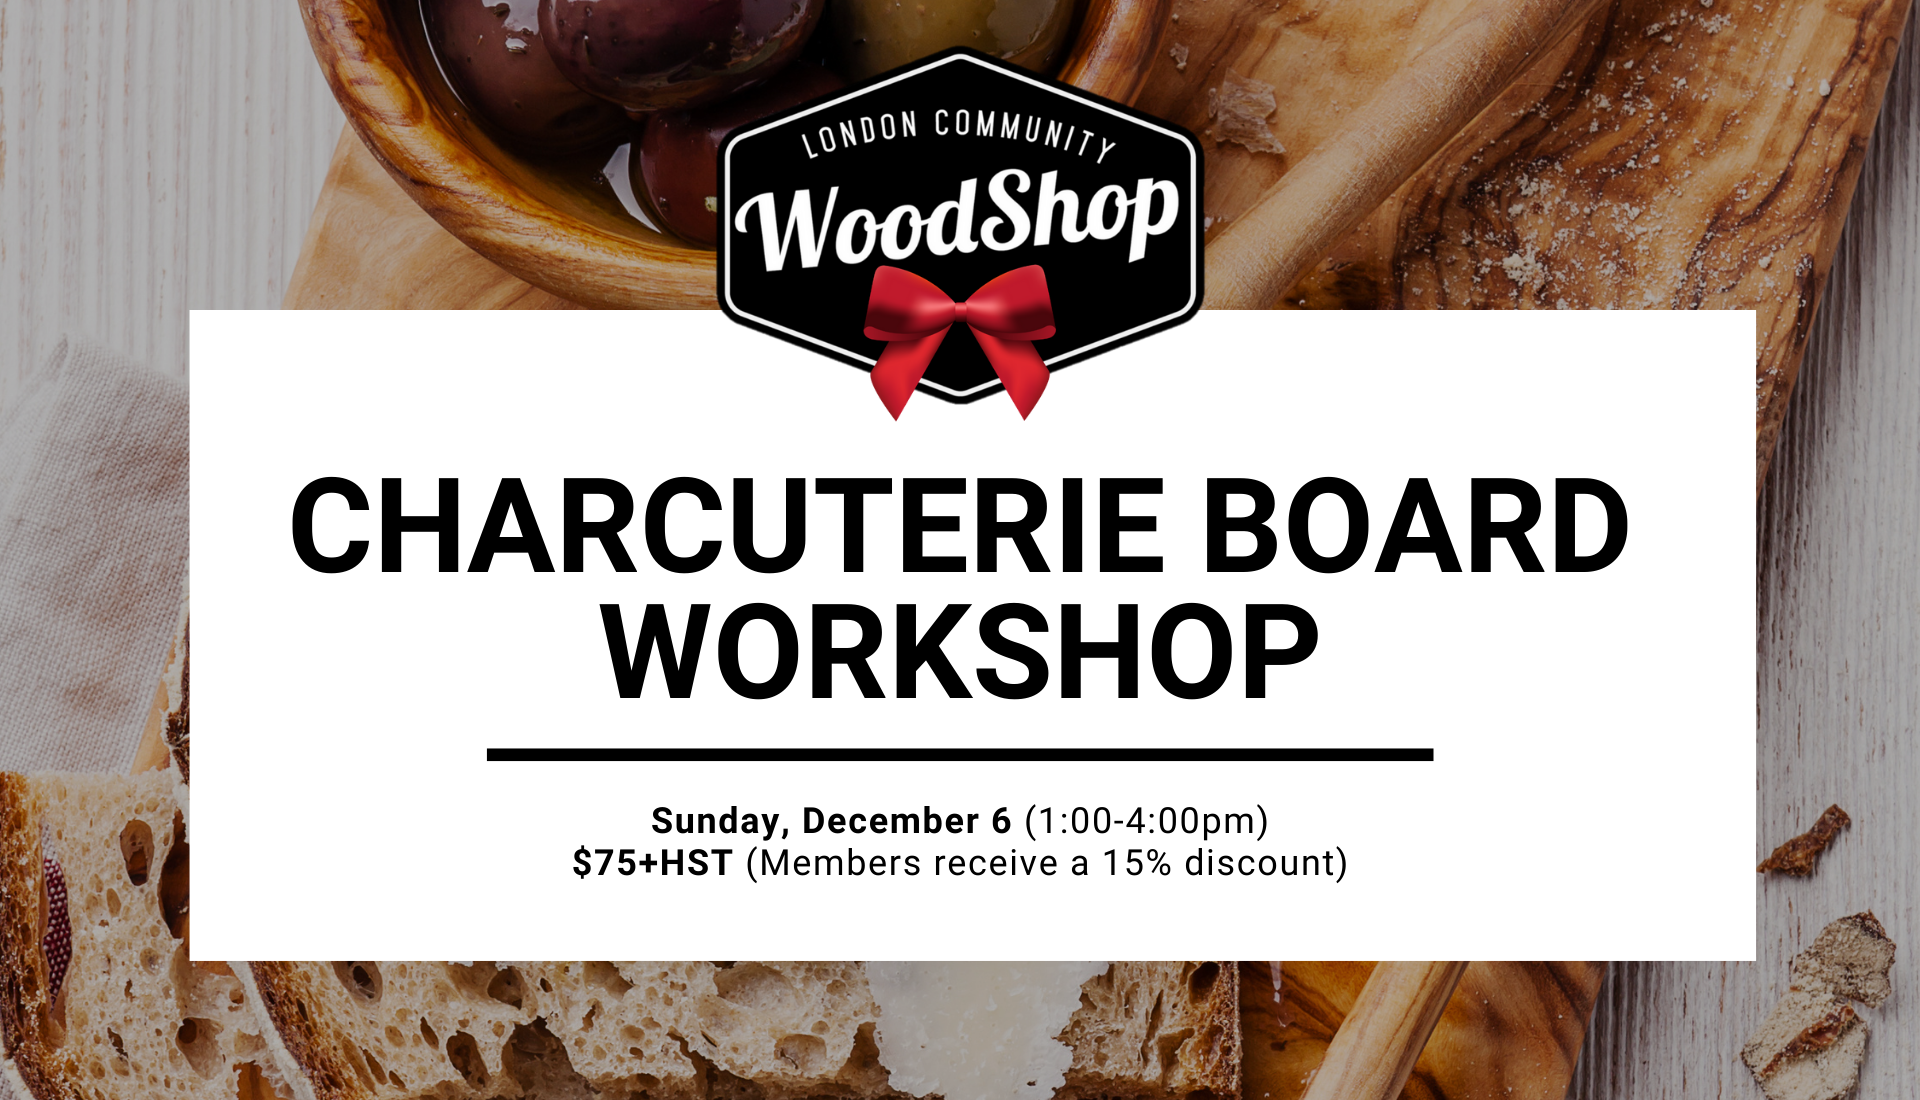 Charcuterie Board Workshop - December 6